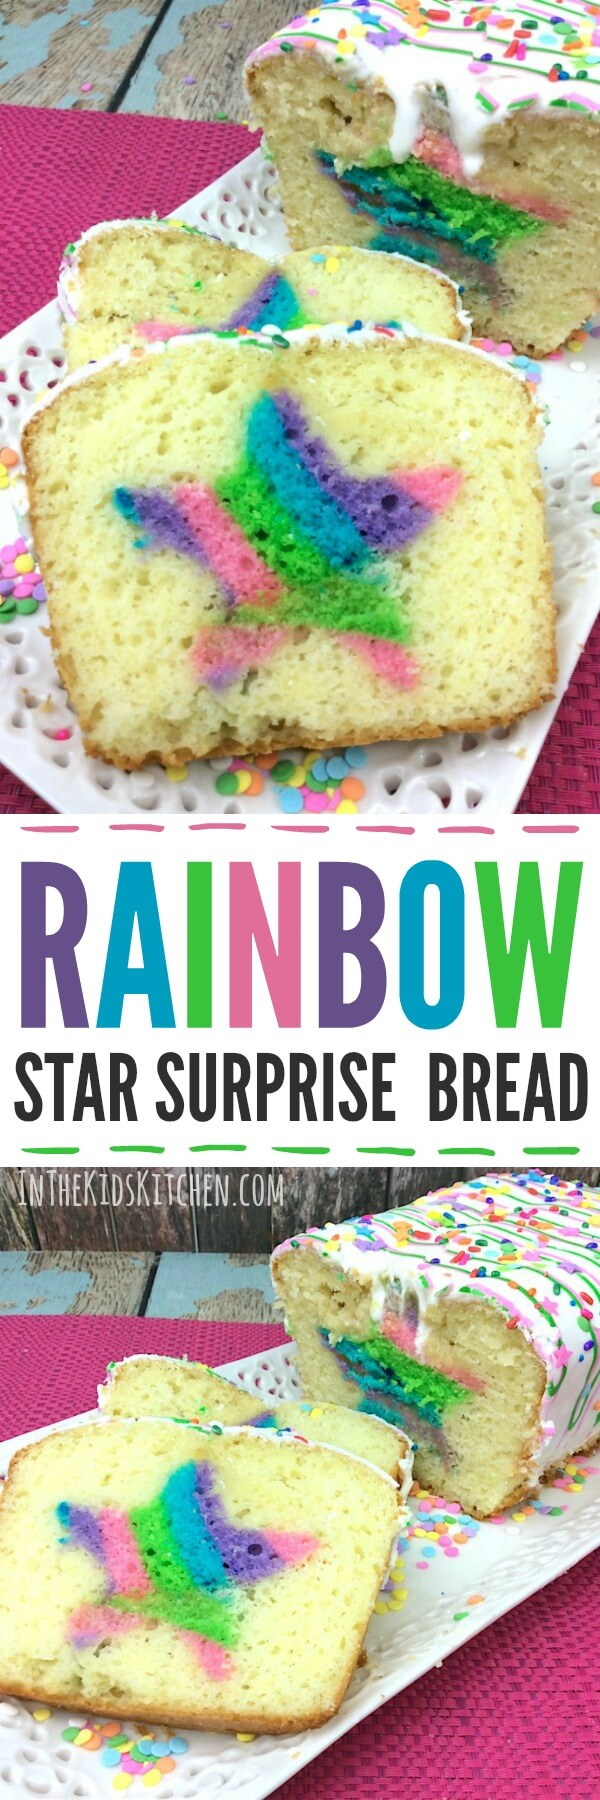 A deliciously sweet dessert bread with a hidden surprise inside: a rainbow star inspired by the My Little Ponies character Twilight Sparkle.